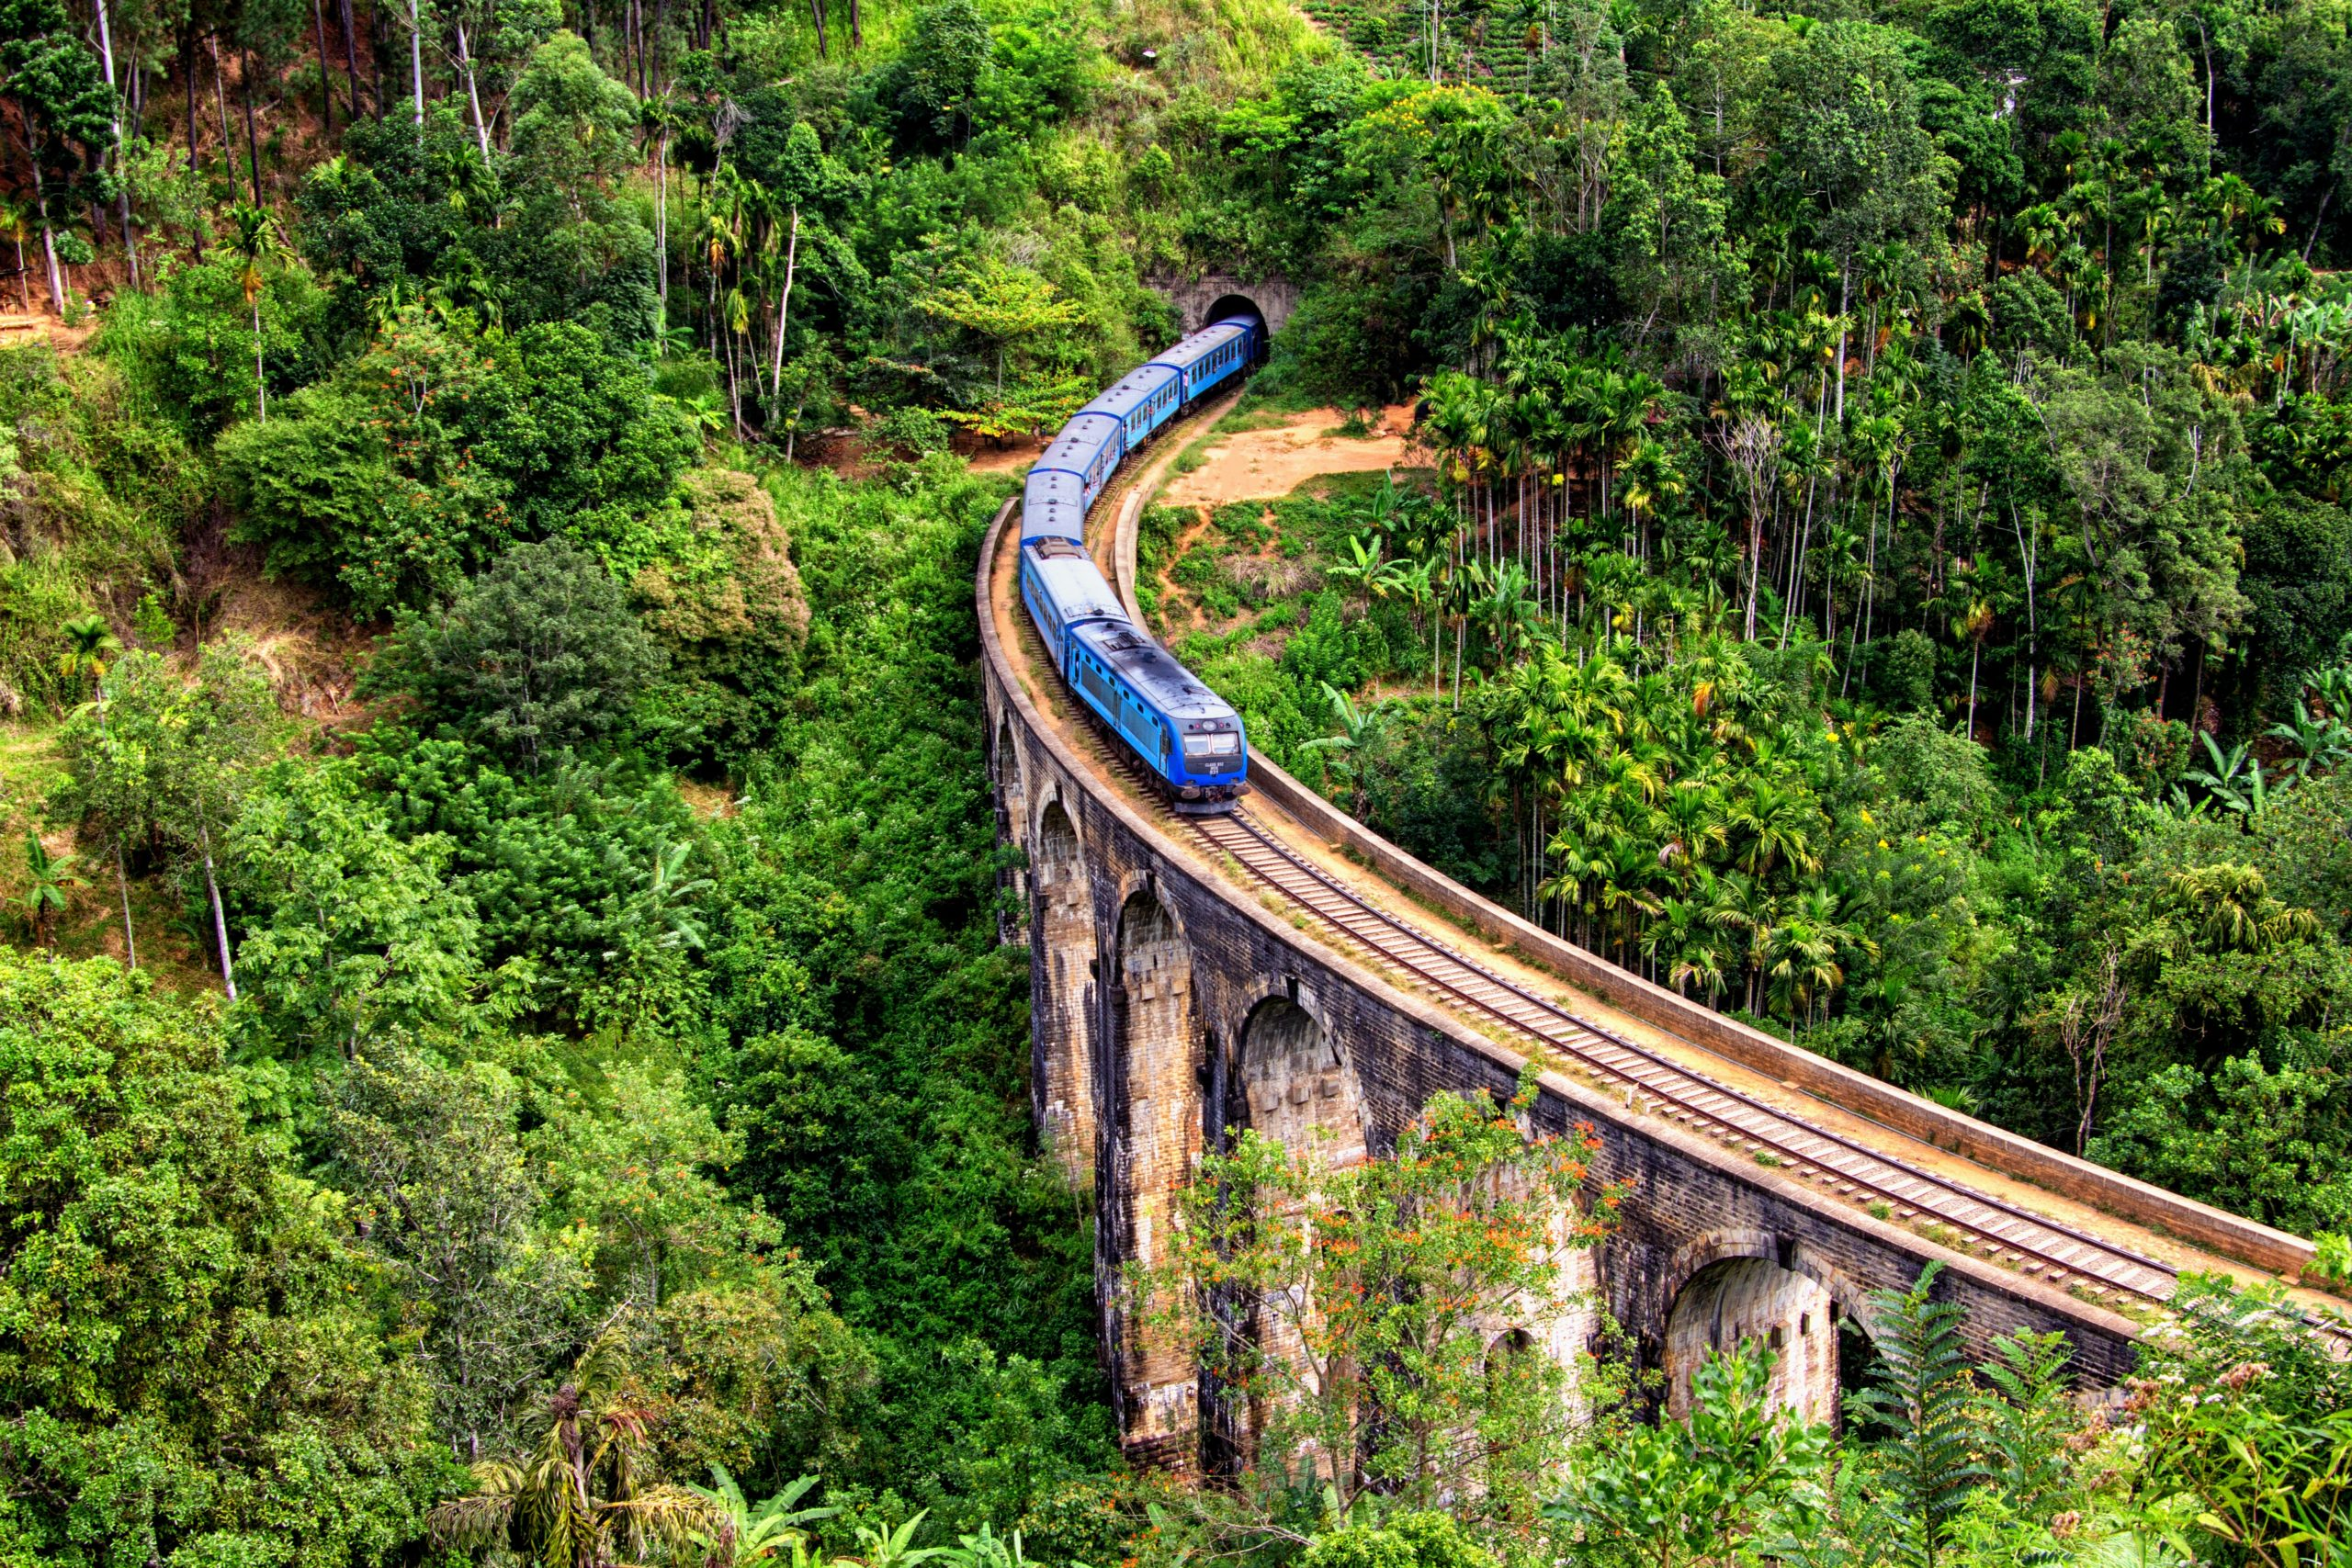 Best places to visit in Sri Lanka - Travelling by train in Sri Lanka from Kandy to Ella